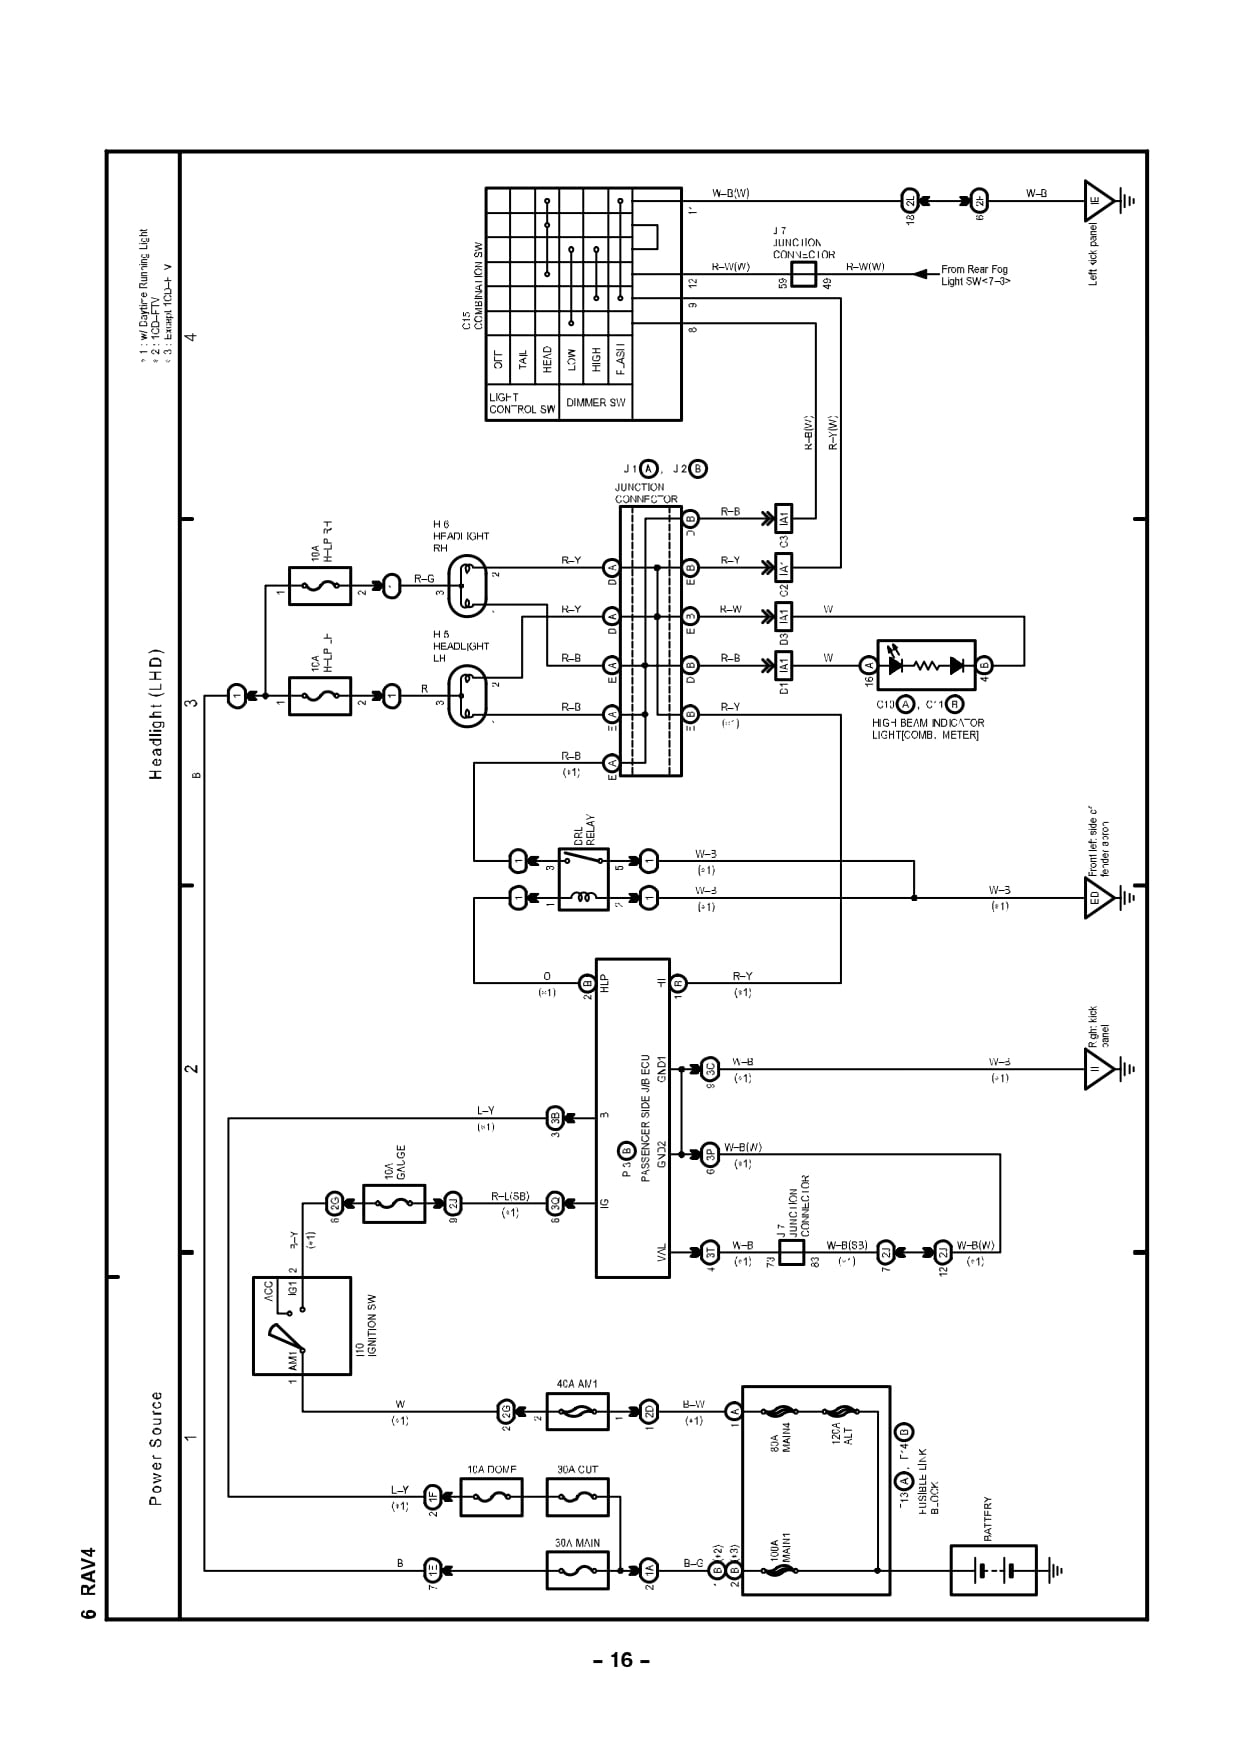 TOYOTA RAV4 Wiring Diagrams - Car Electrical Wiring DiagramCar Electrical Wiring Diagram - Jimdo